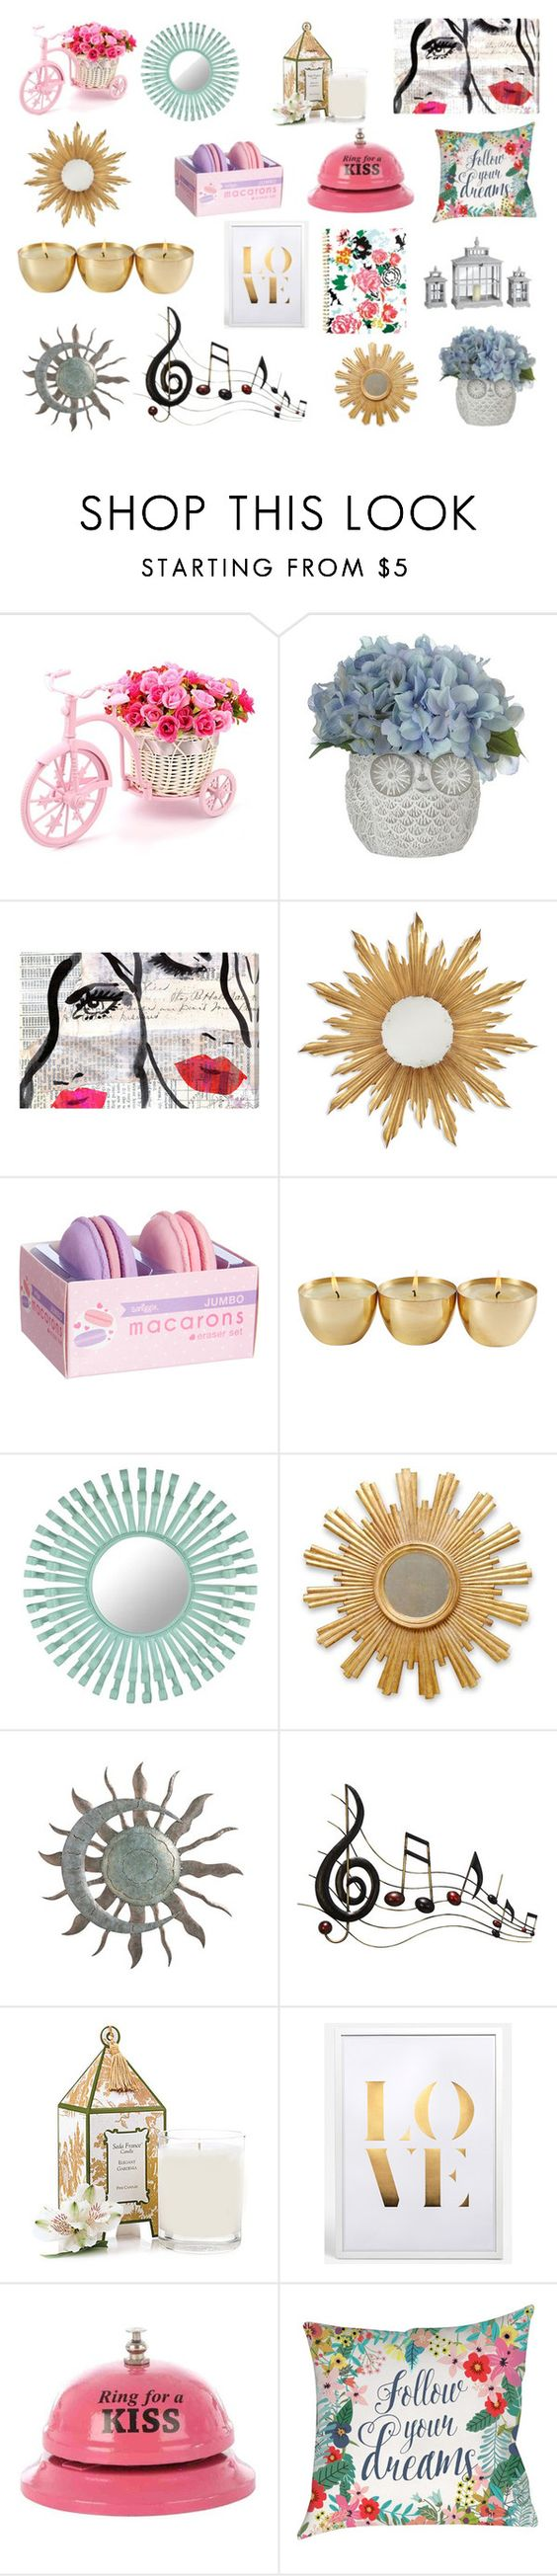 """Decoração"" by marciabackermendes ❤ liked on Polyvore featuring interior, interiors, interior design, home, home decor, interior decorating, Oliver Gal Artist Co., Jonathan Charles Fine Furniture, Florence Broadhurst and Benzara"